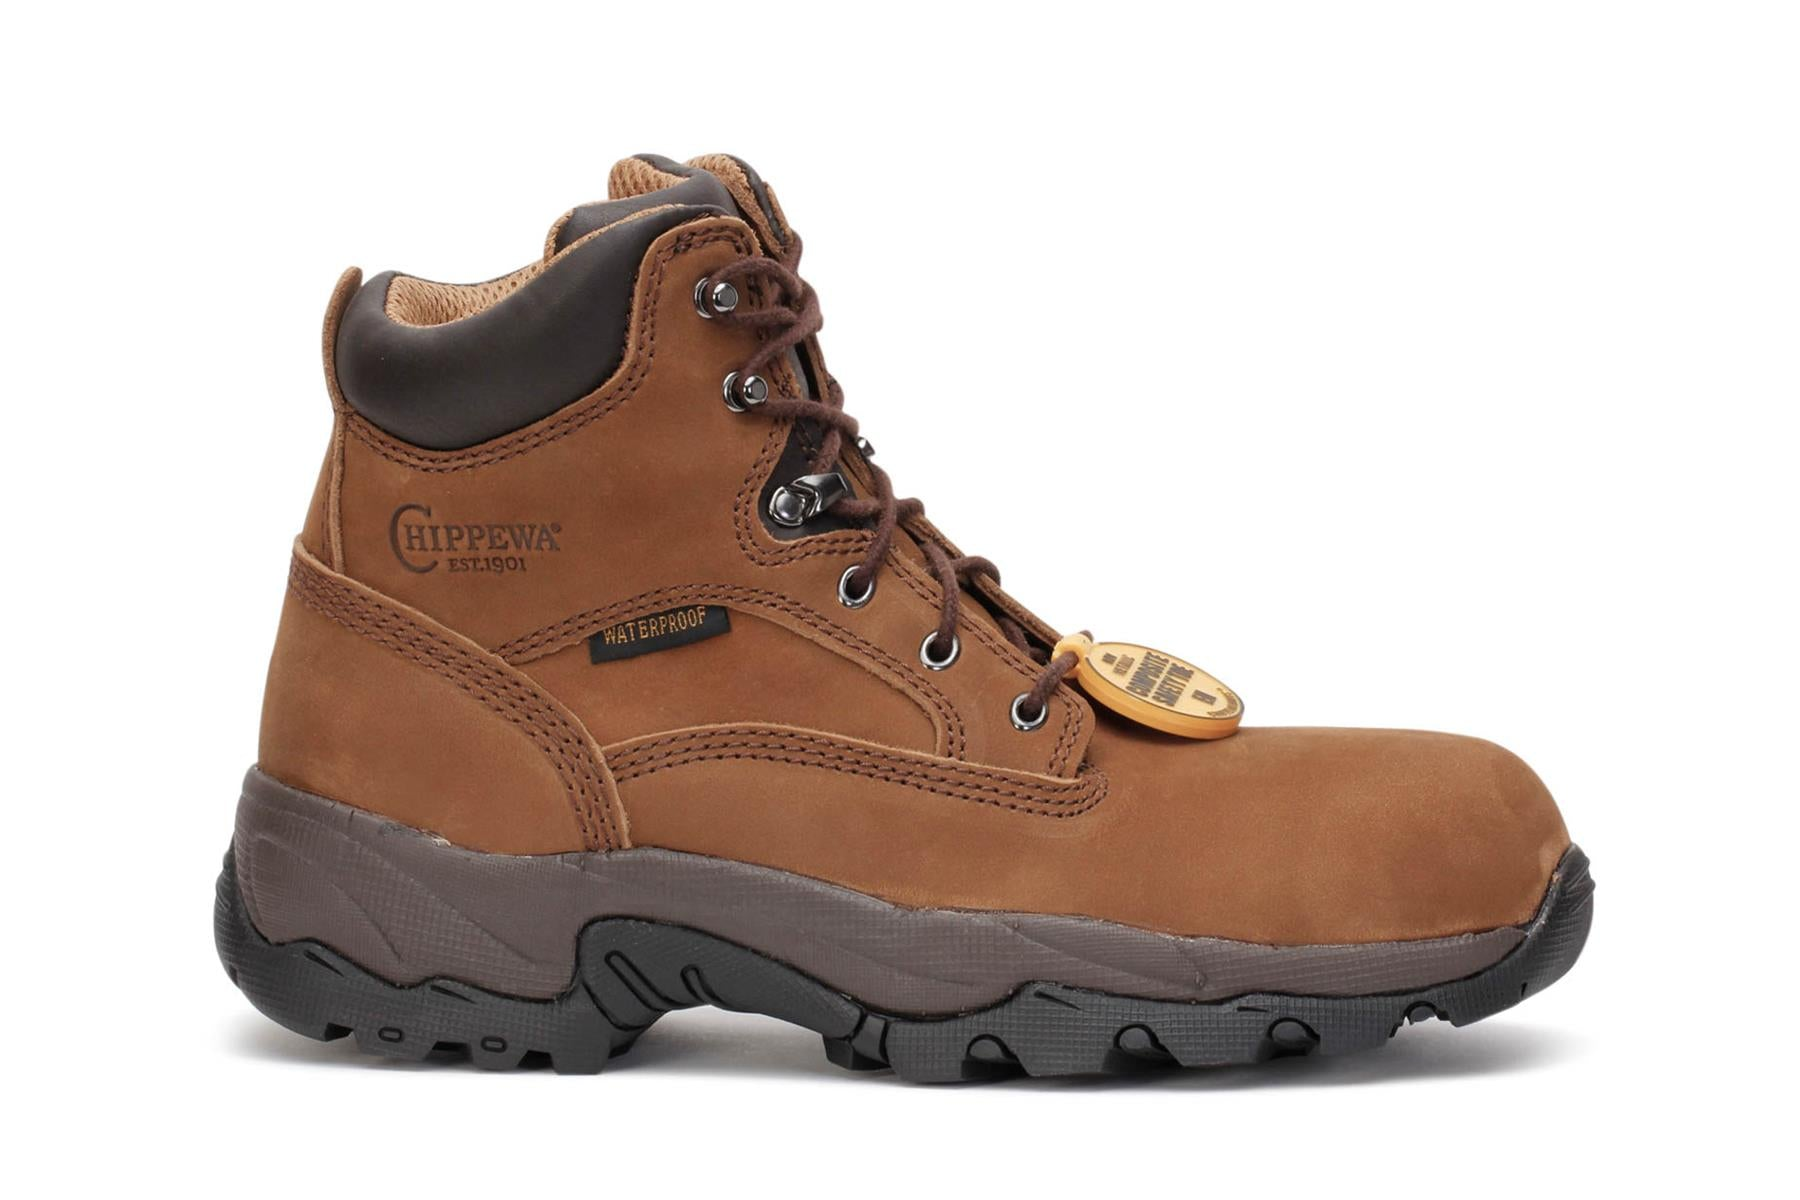 chippewa-mens-6-graeme-composite-toe-boots-waterproof-brown-55161-main